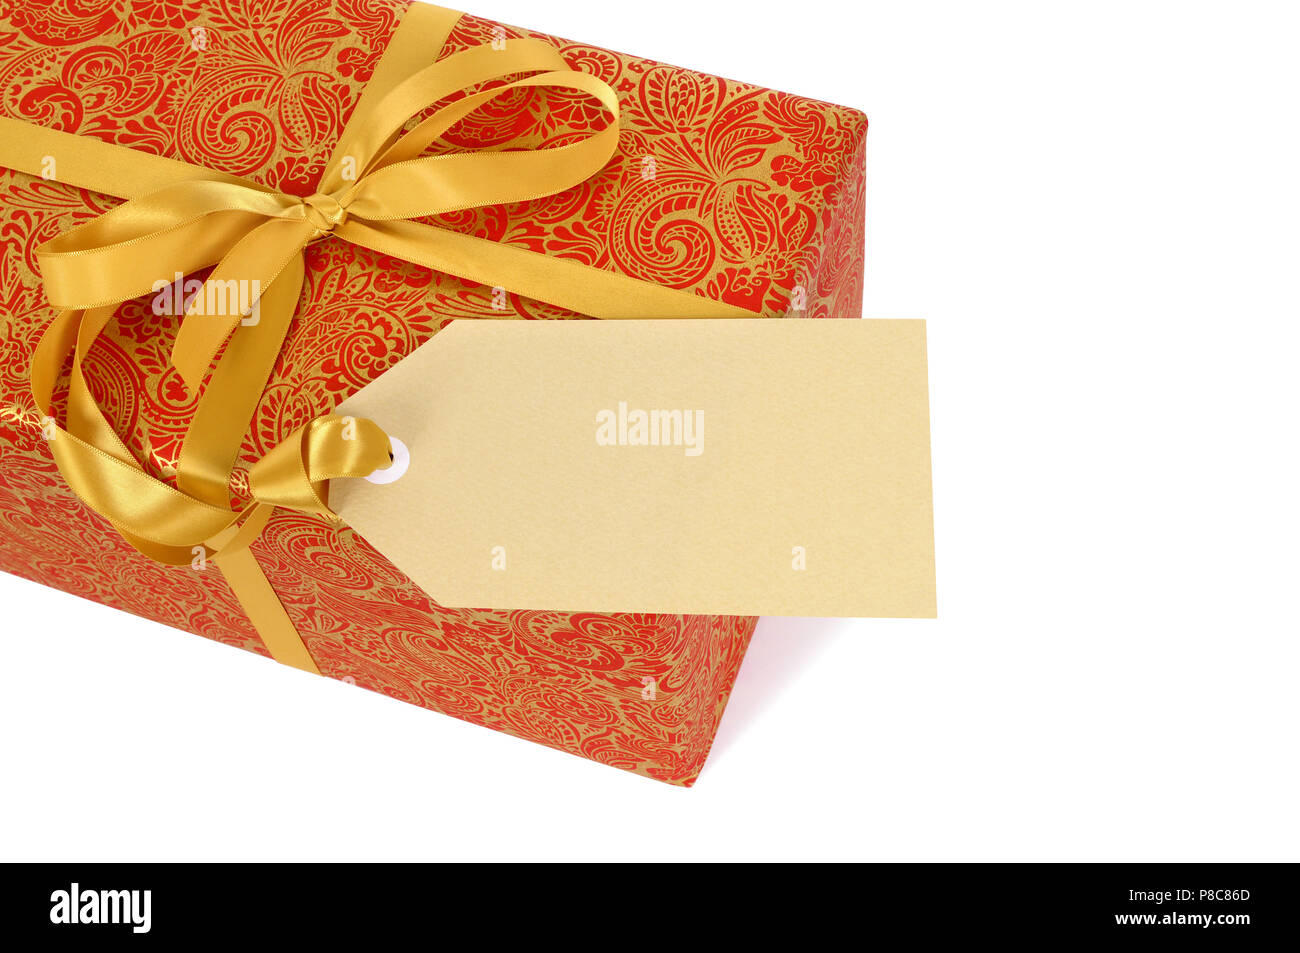 red and gold gift with ribbon and gift tag label isolated on white